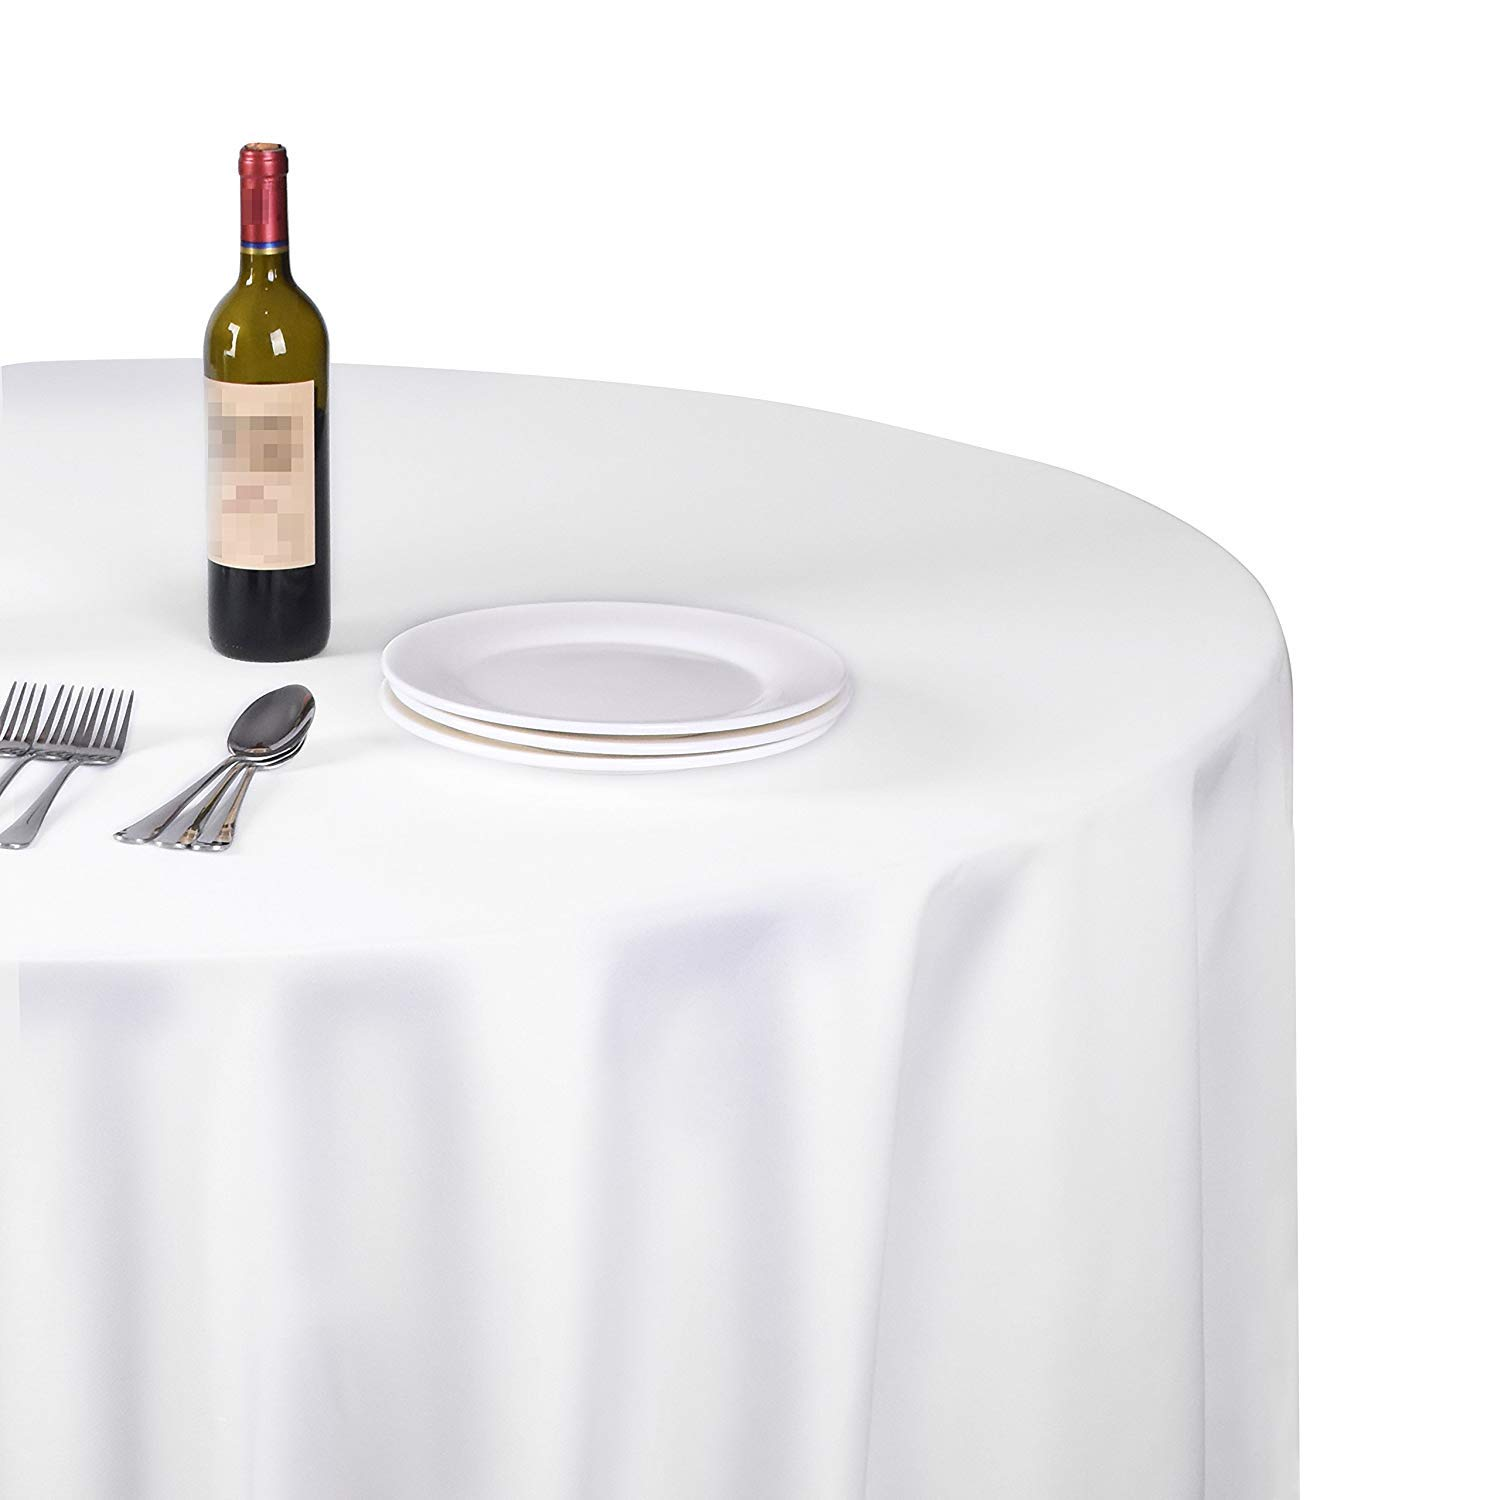 EMART Round Tablecloth, 120 inch Diameter White 100% Polyester Banquet Wedding Party Picnic Circle Table Cloths (6 Pack) by EMART